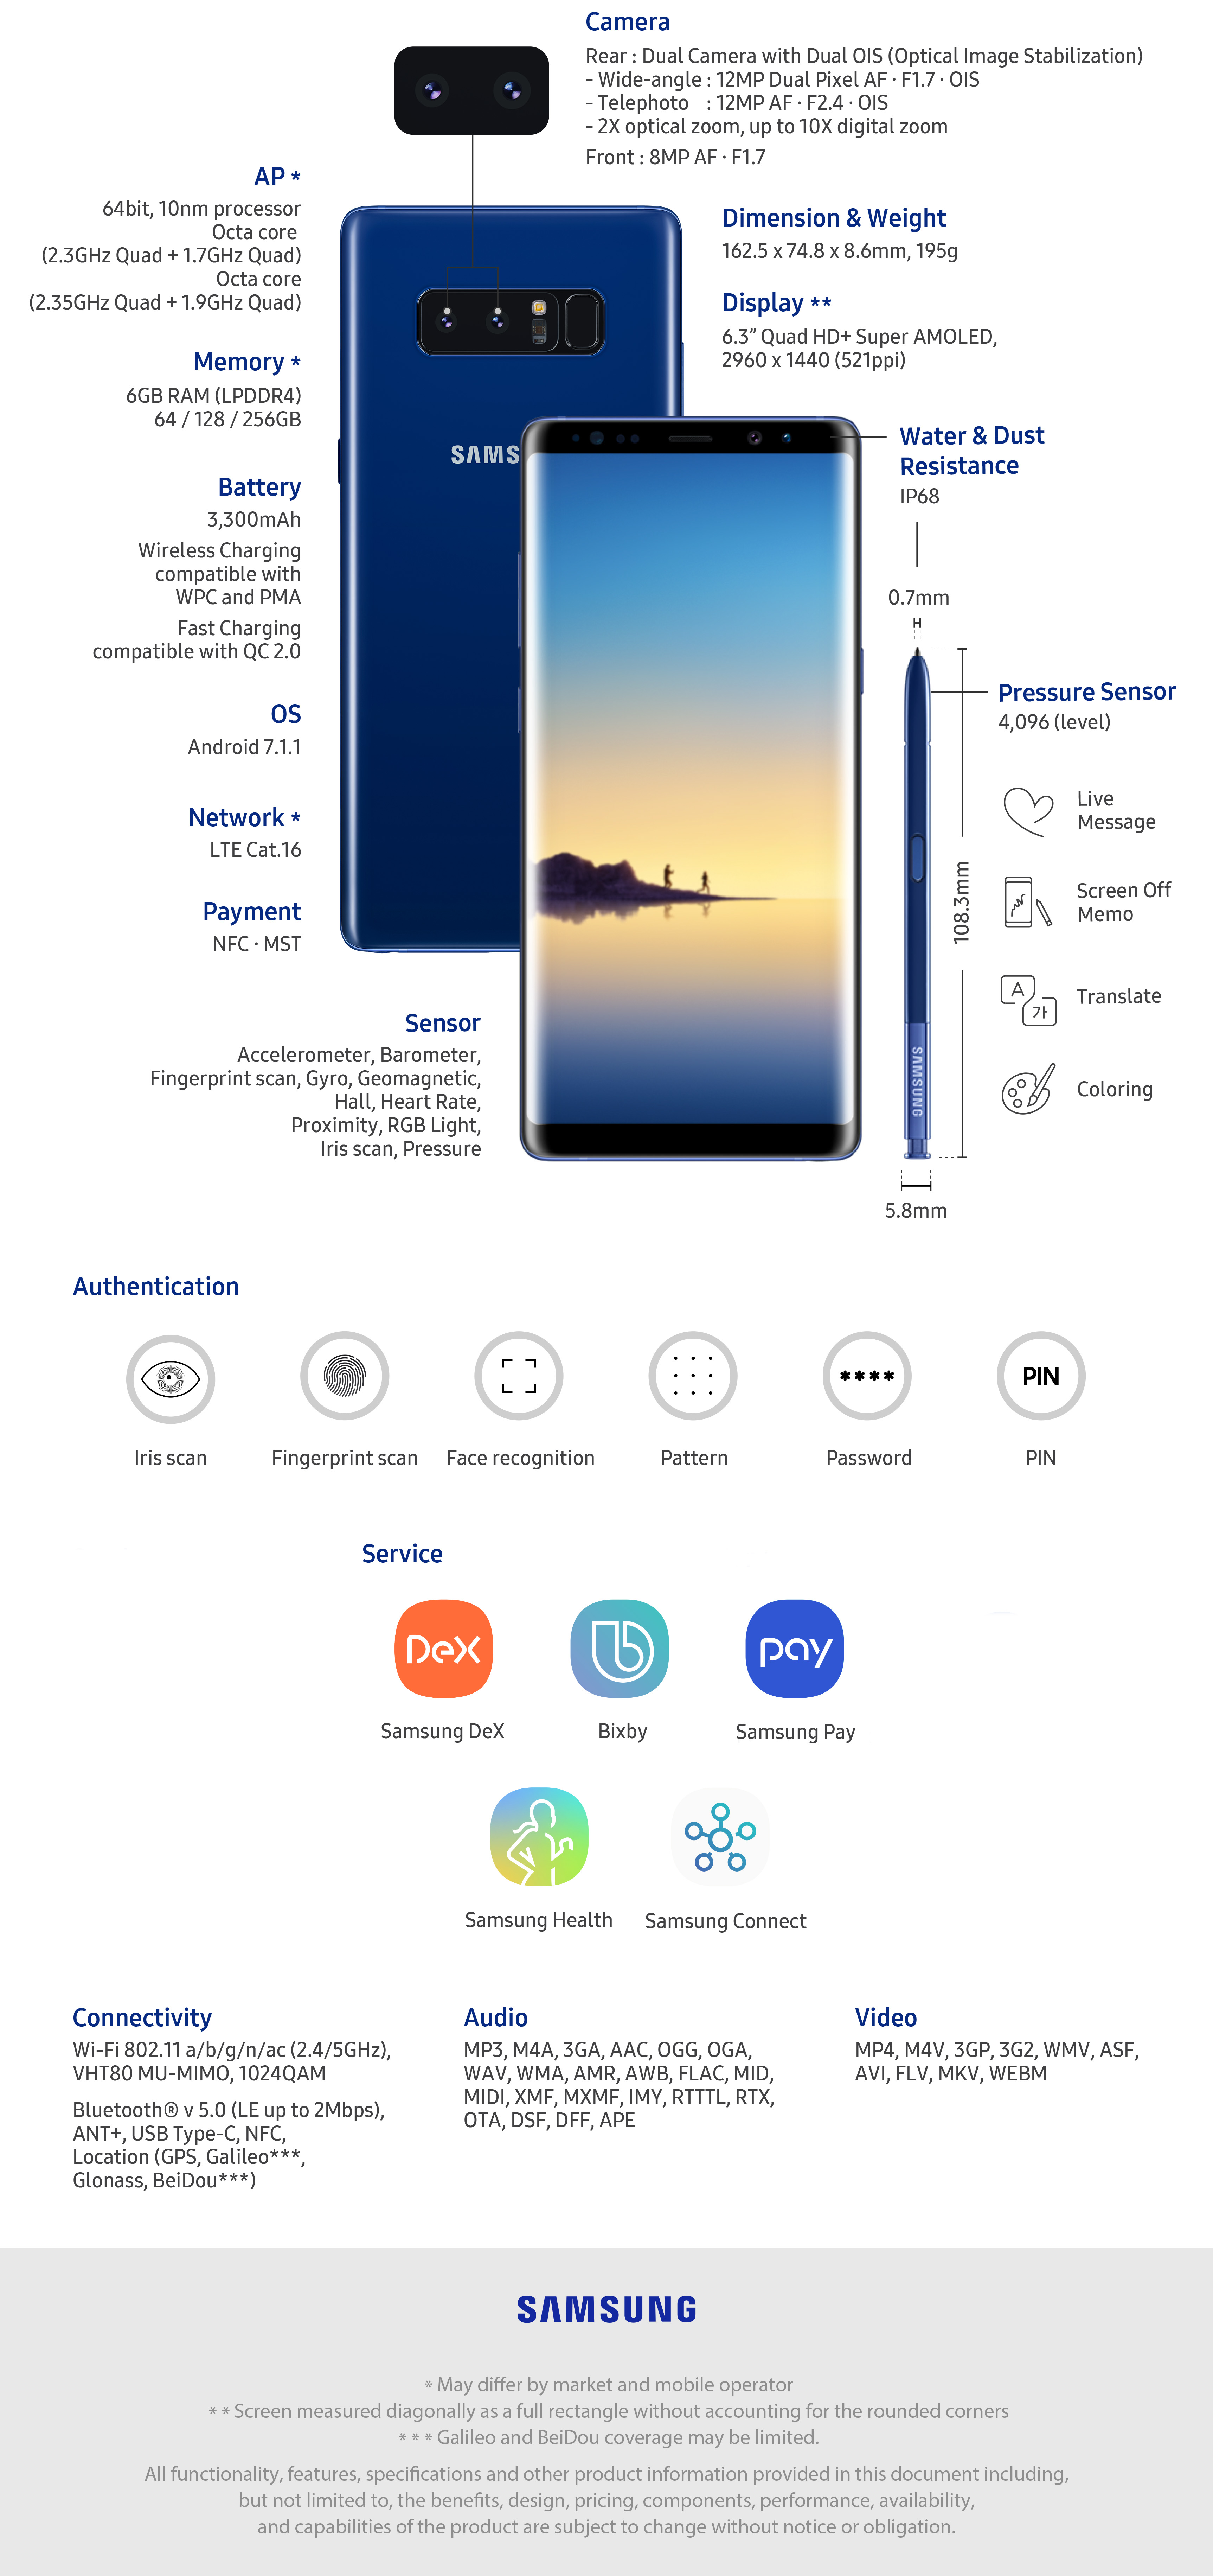 Samsung's All New Galaxy Note 8 - Specifications, Features, and Functions - All in All